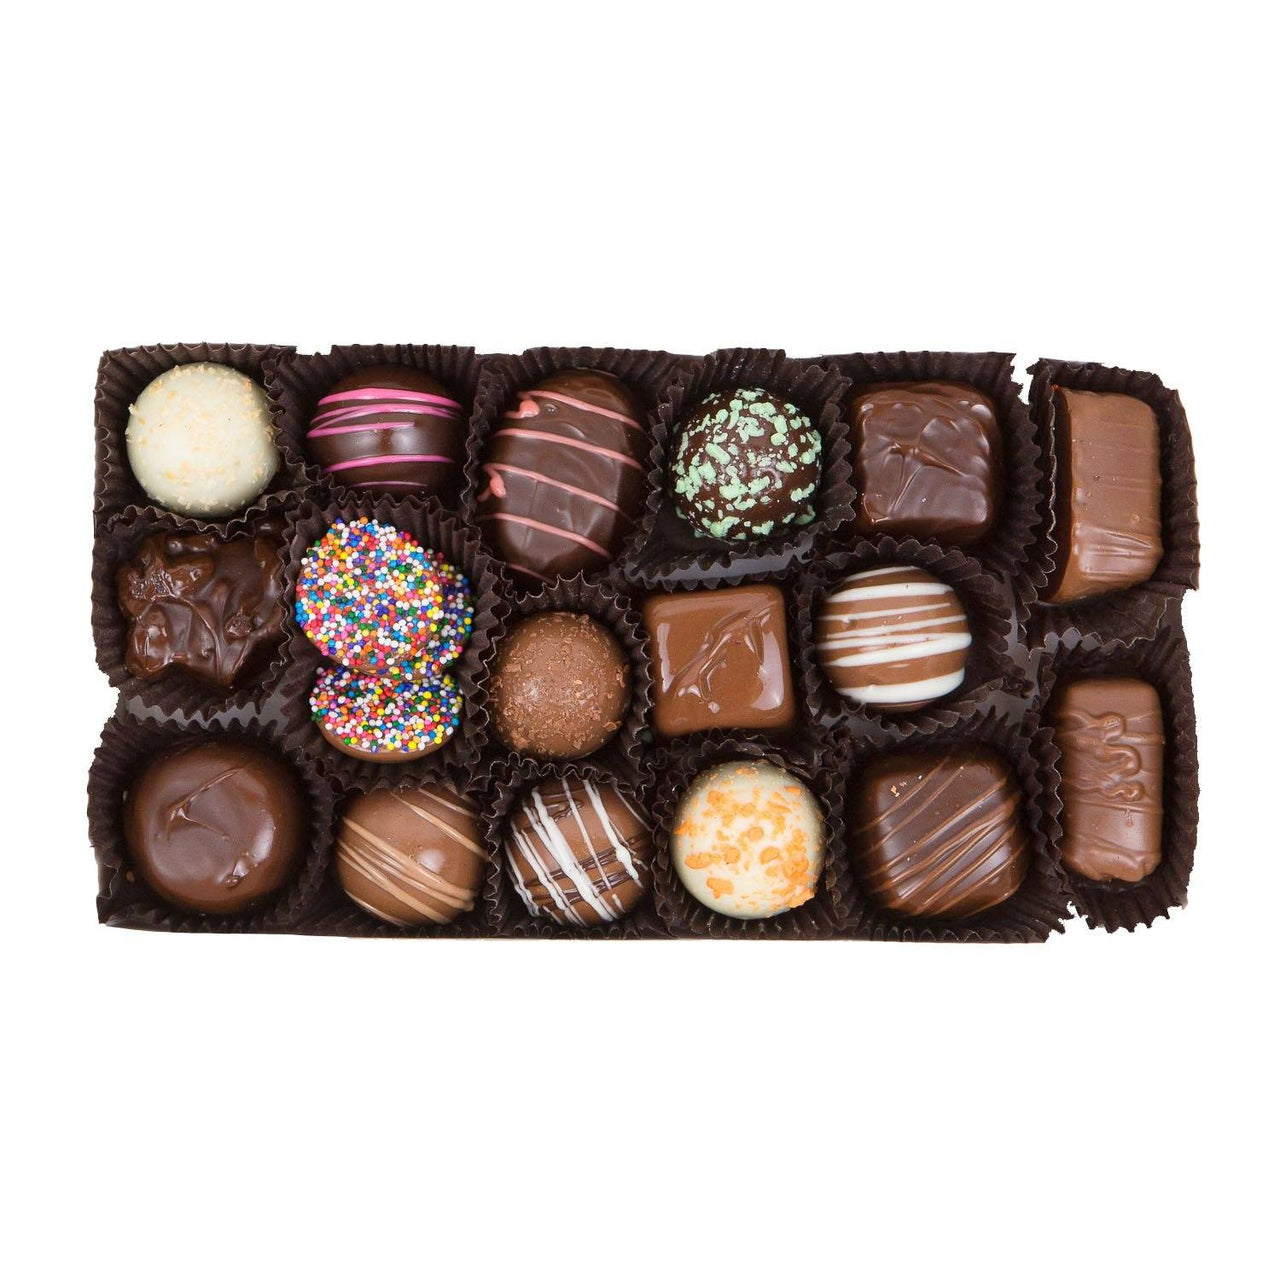 Gifts for Uncle - Assorted Chocolate Gift Box - Jackie's Chocolate